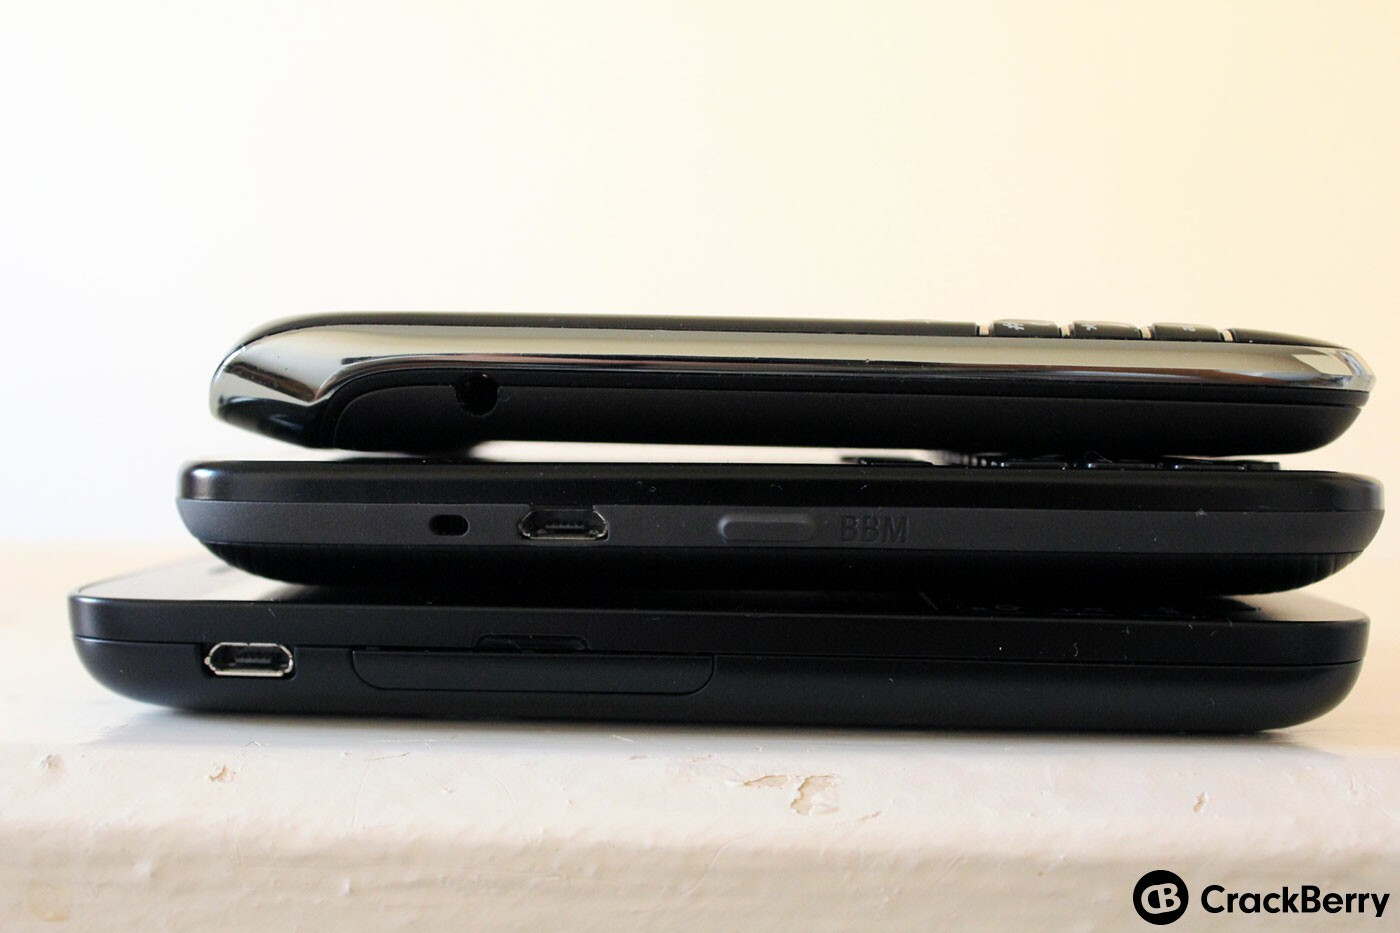 Size comparison - top to bottom: Bold 9790, 9720, Q5